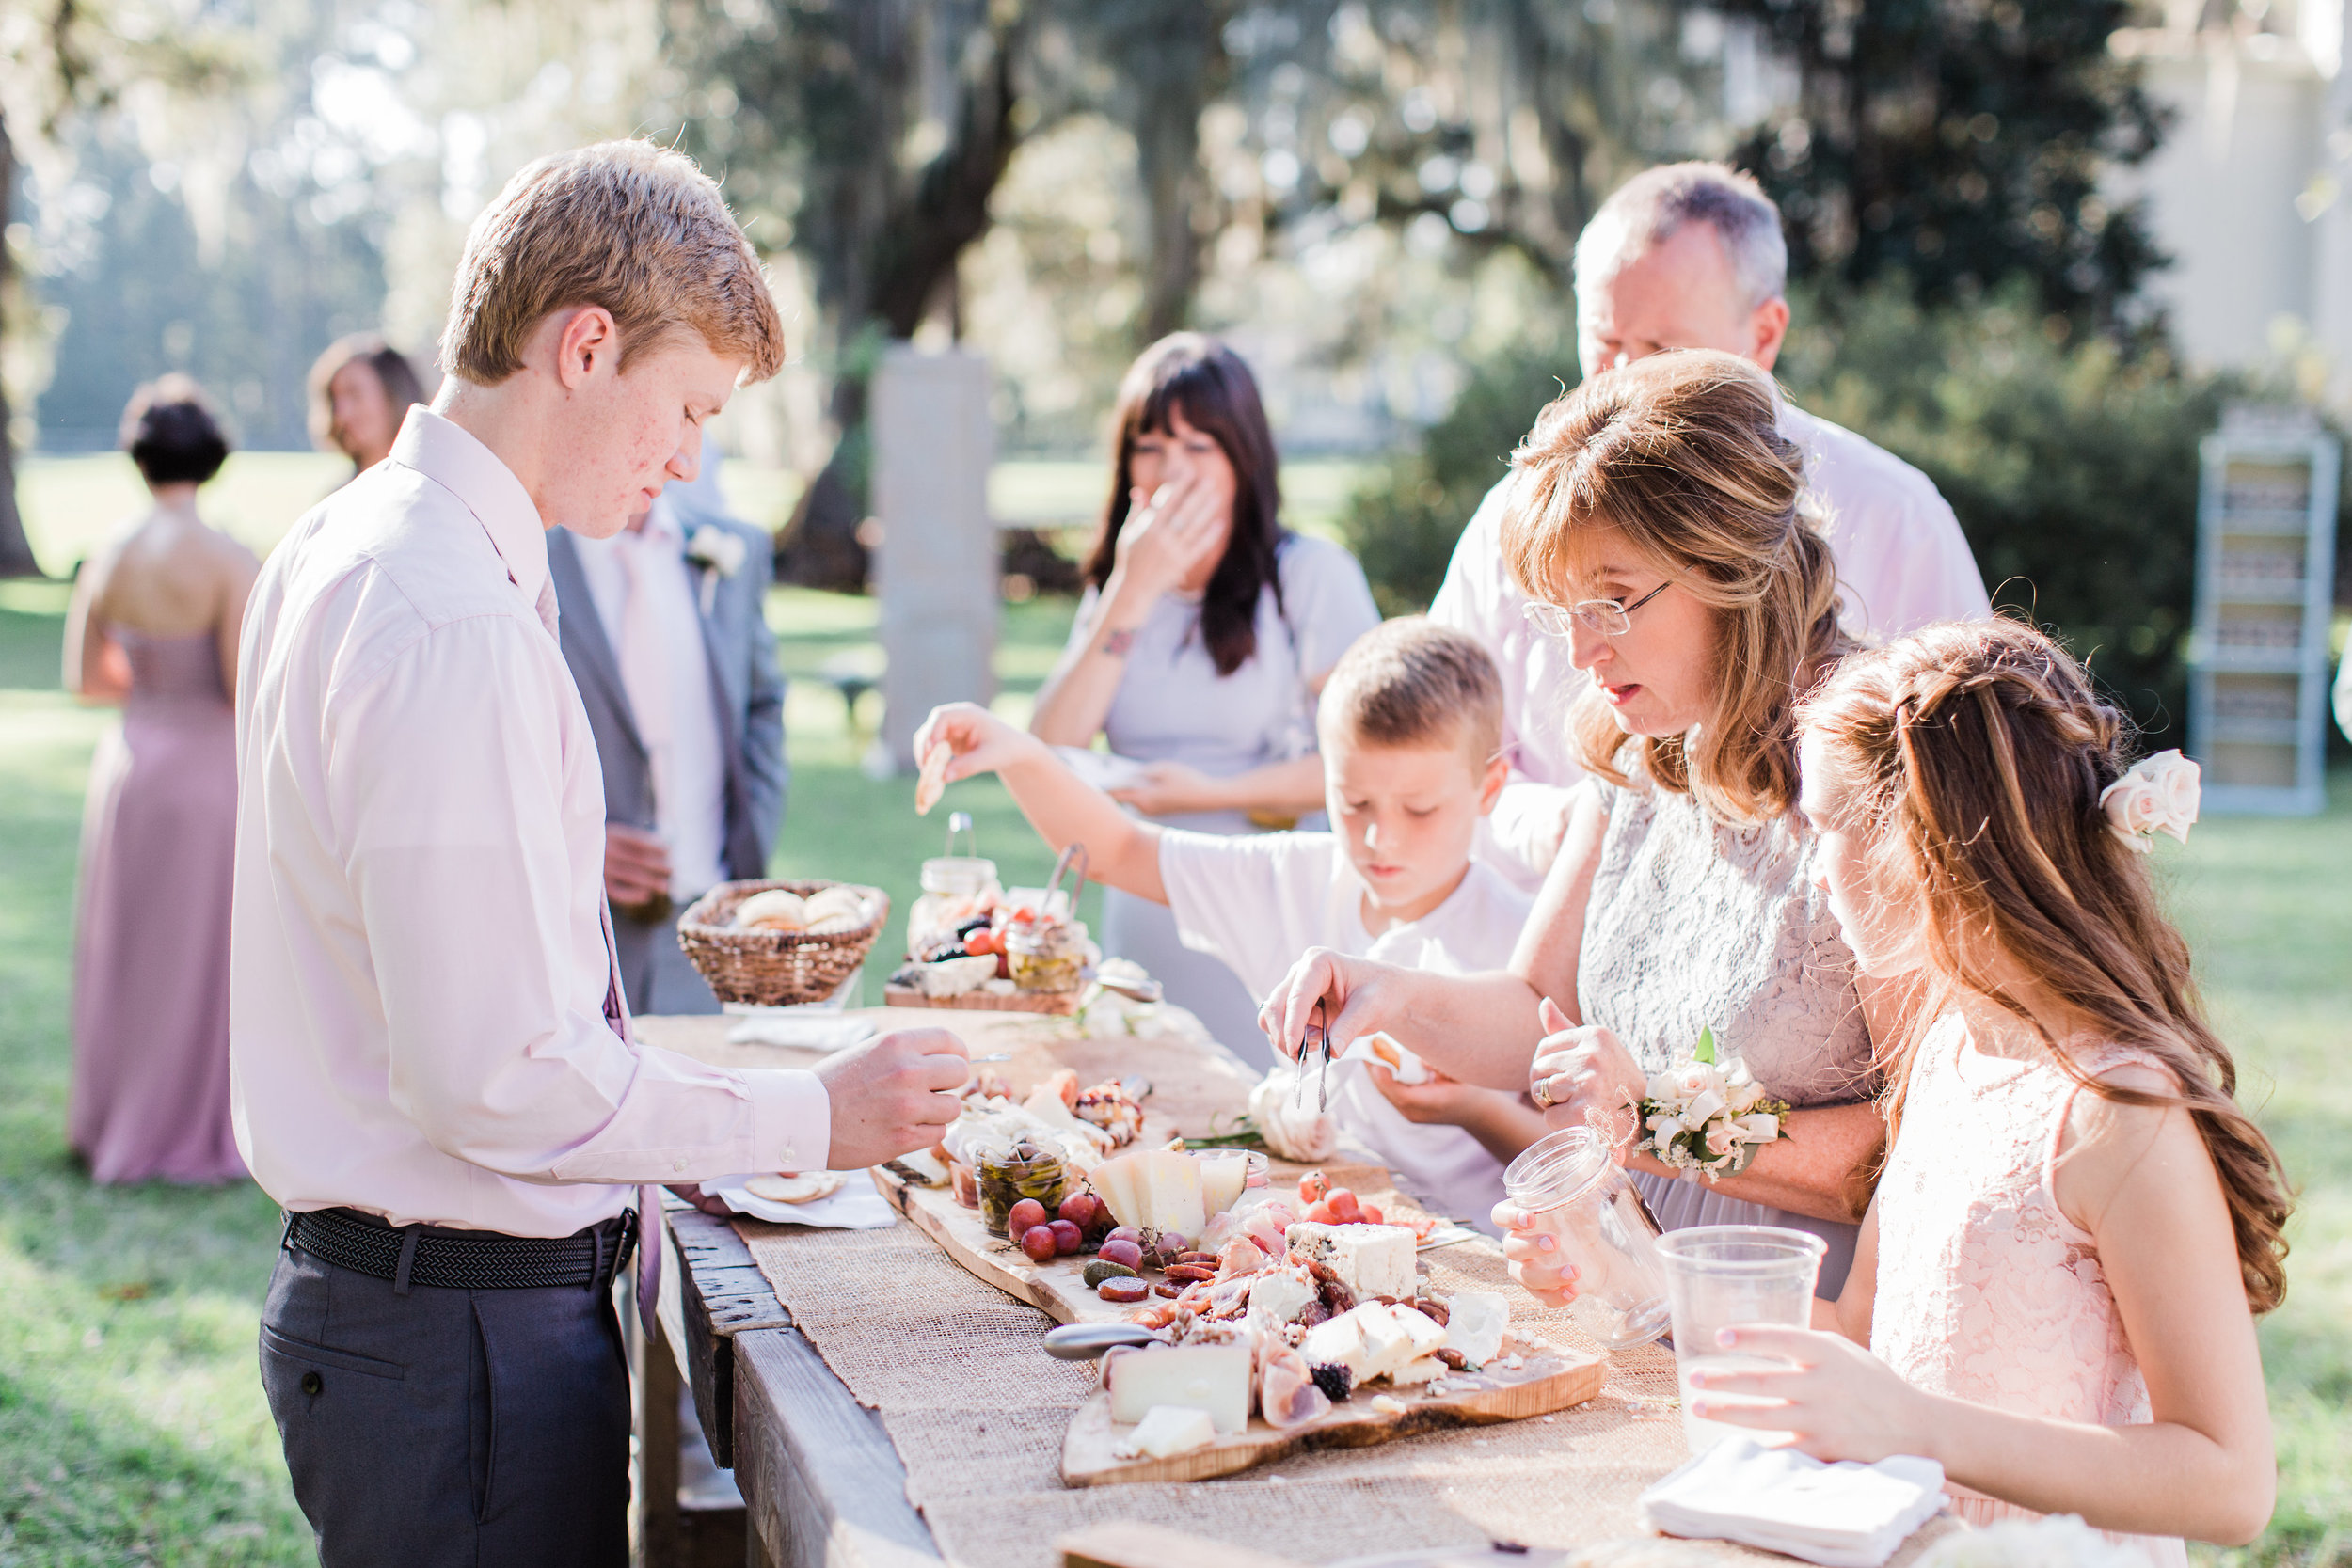 lowcountry-kitchen-catering-beaufort-sc-dave-and-erica-hein-wedding-reception.JPG